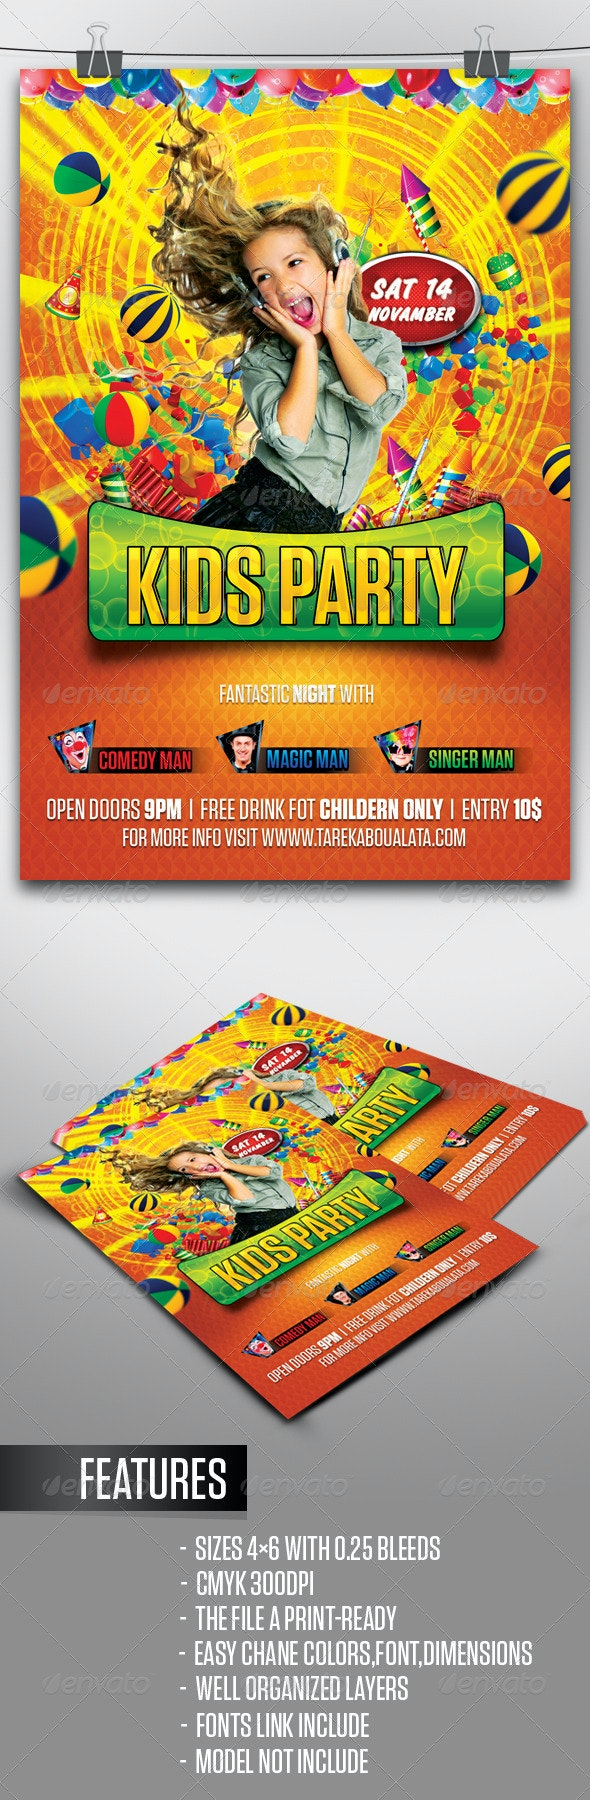 Kids Party Flyer - Clubs & Parties Events